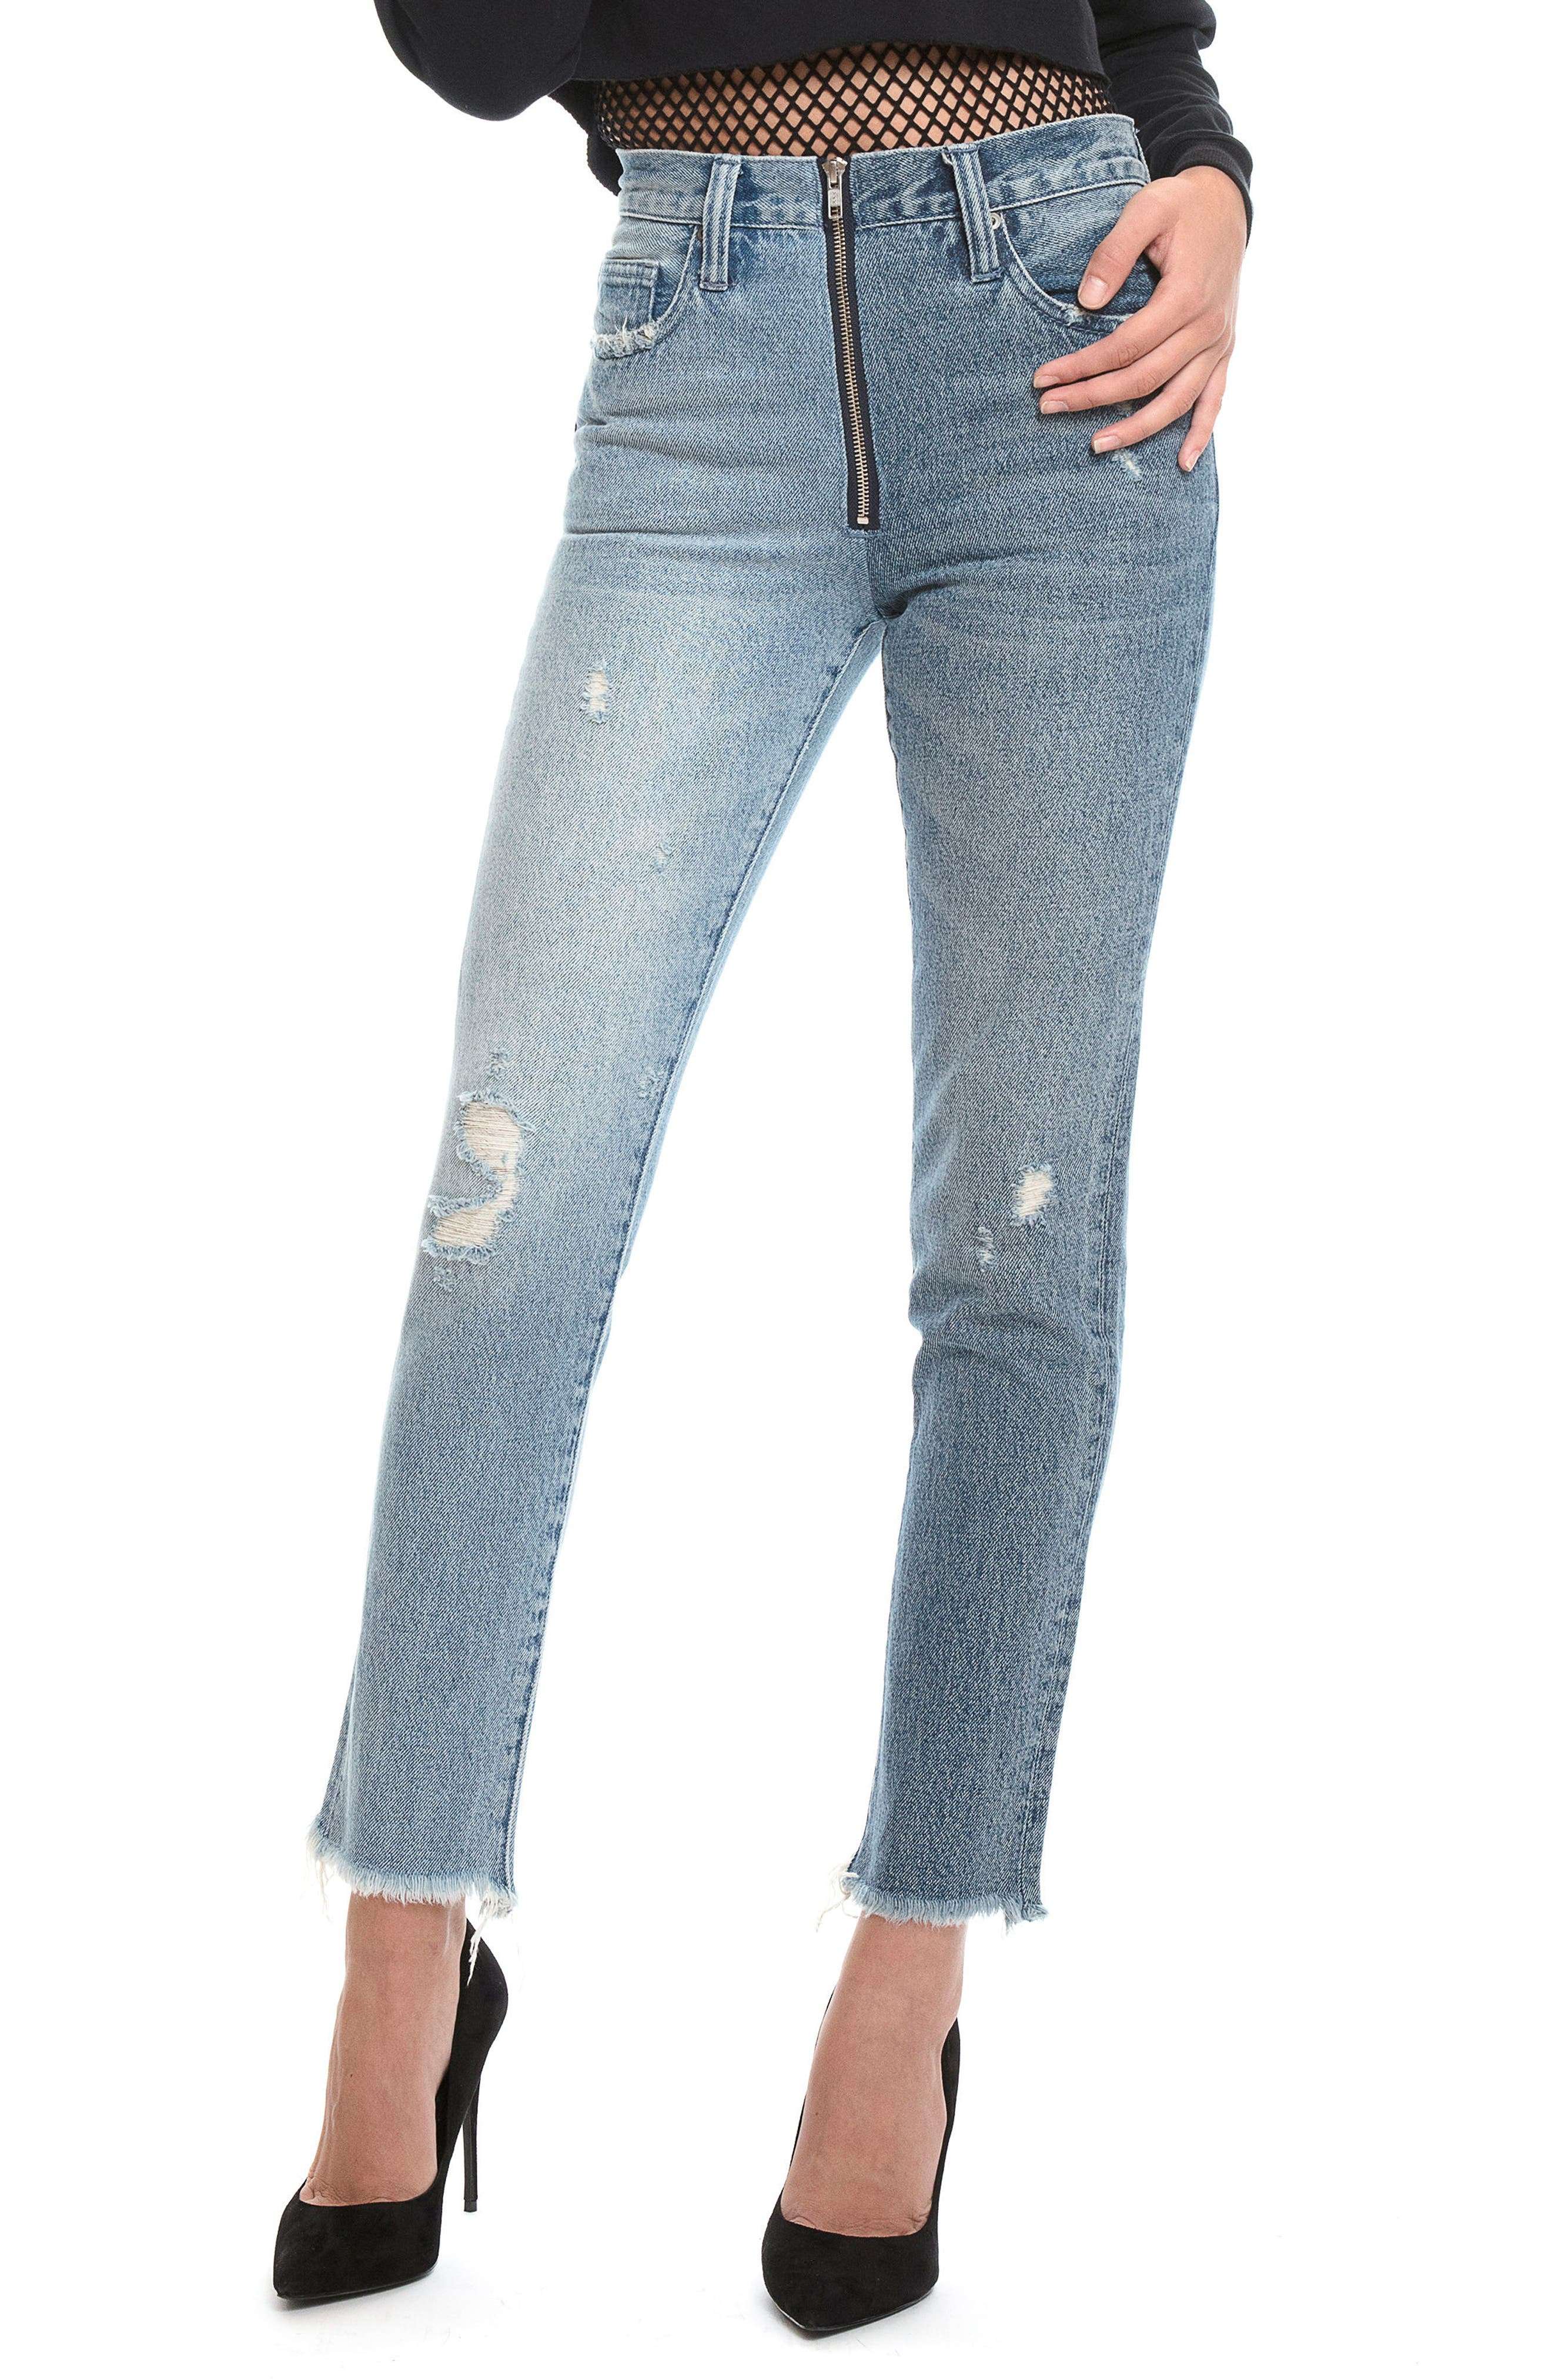 Chevelle Ankle Skinny Jeans,                         Main,                         color, 490